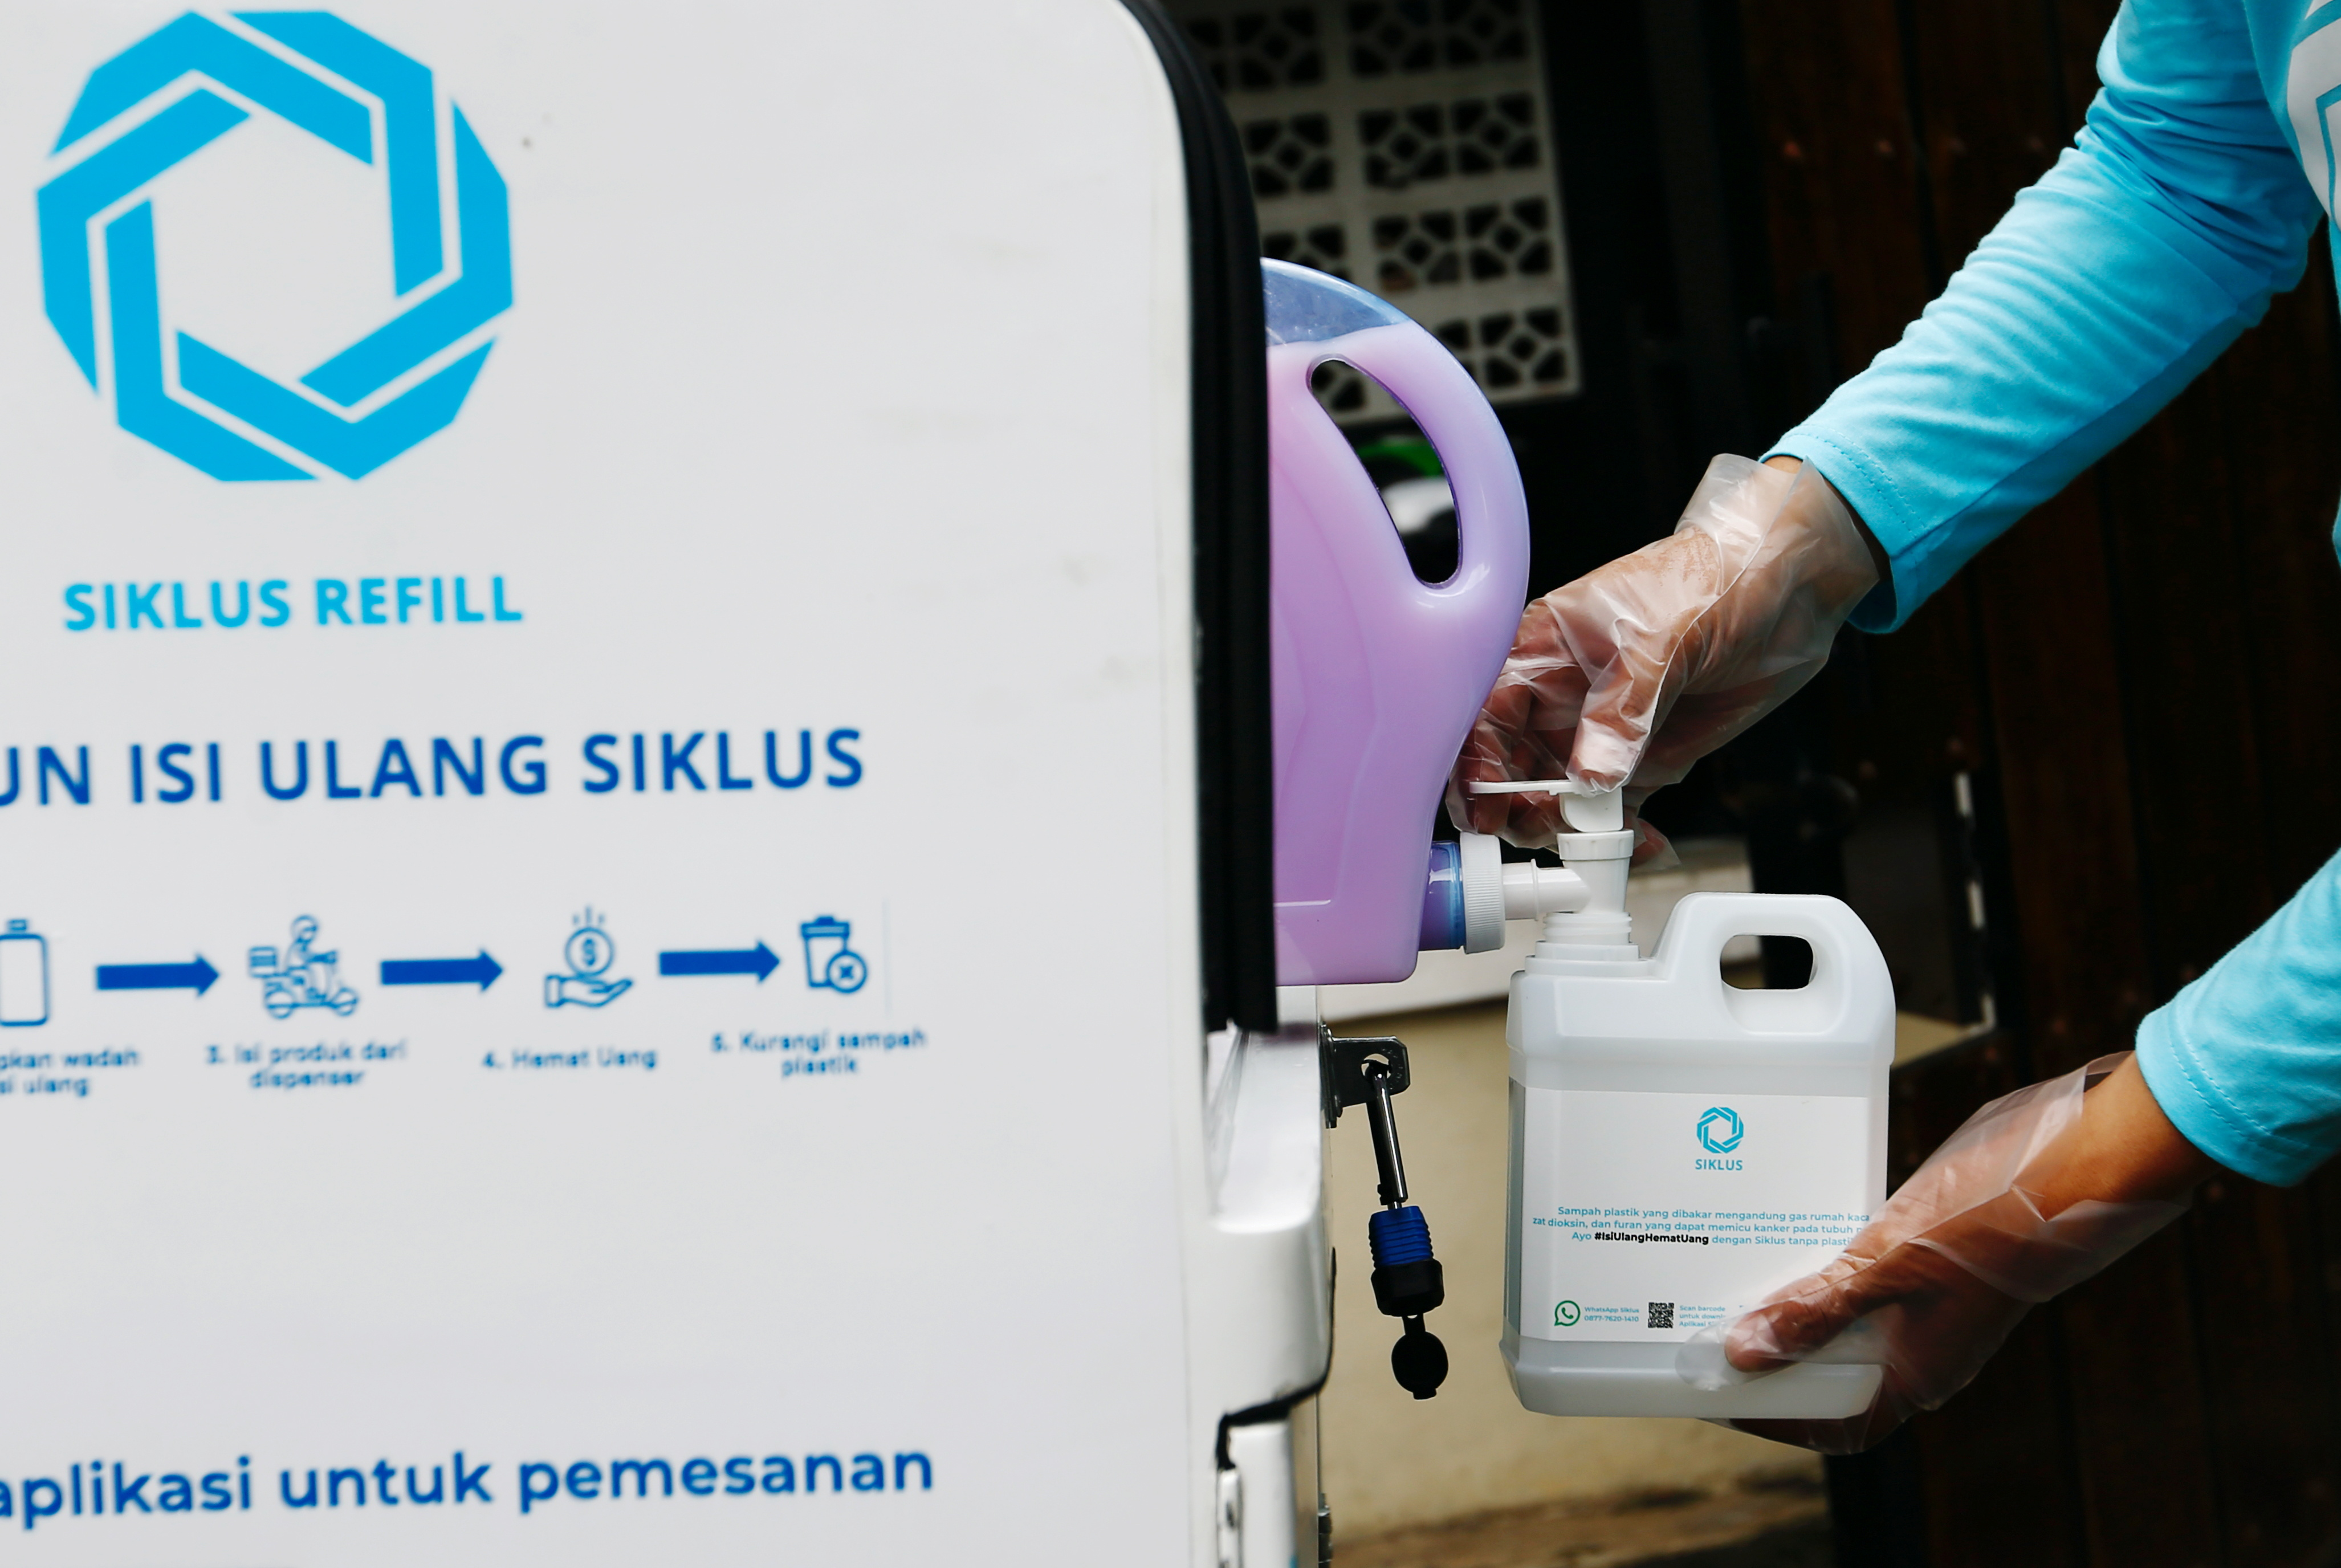 A worker at Siklus, a start-up company which refills household products in a bid to reduce plastic waste, refills a jerry can with cleaning liquid for a customer in Jakarta, Indonesia, May 19, 2021. Picture taken May 19, 2021 REUTERS/Ajeng Dinar Ulfiana